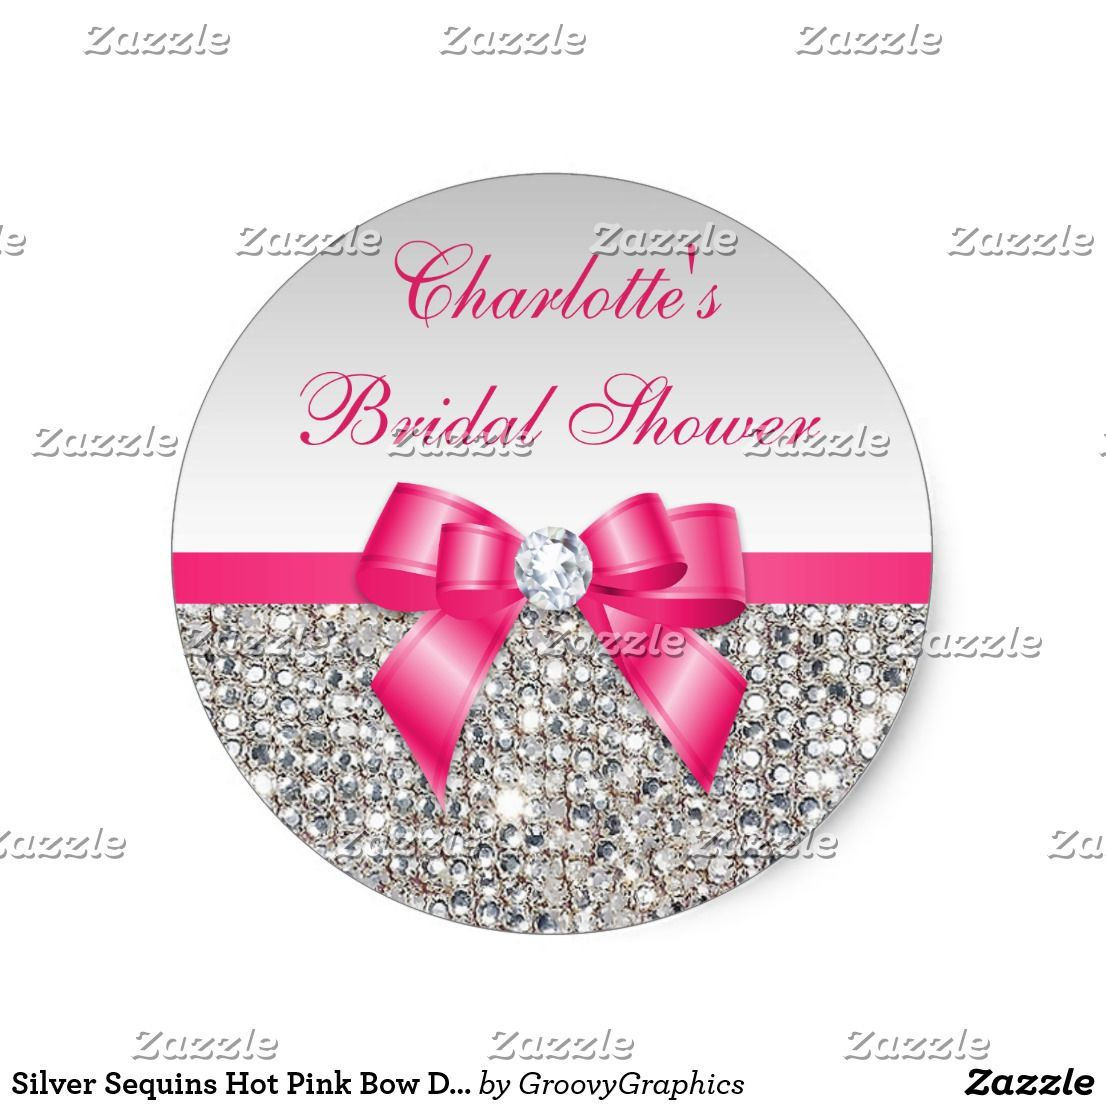 Silver Sequins Hot Pink Bow Diamond Bridal Shower Classic Round ...